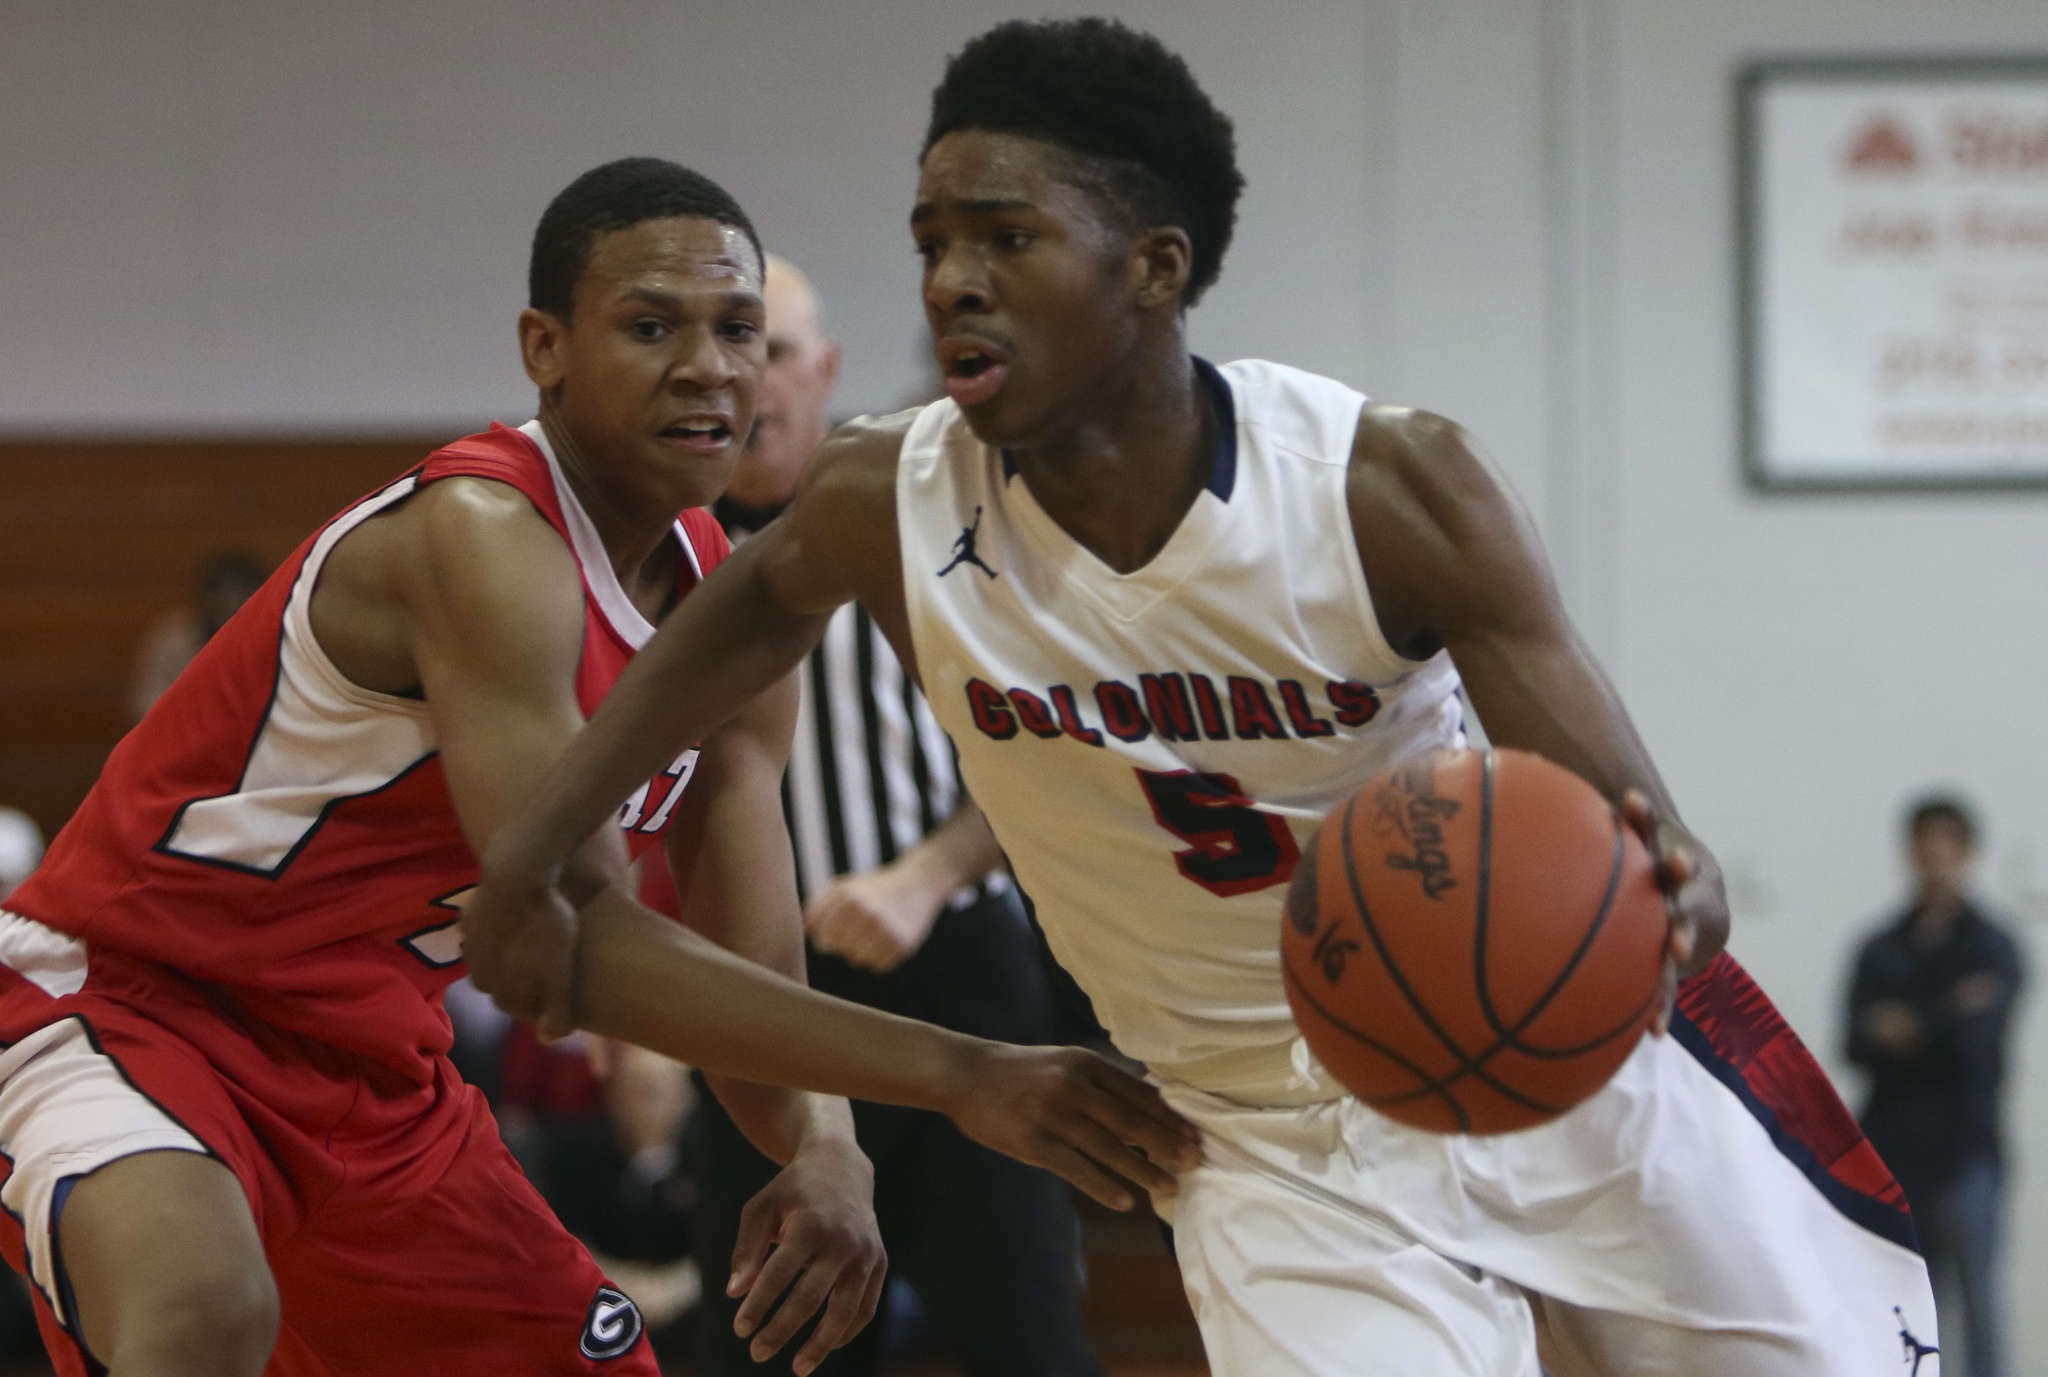 Plymouth Whitemarsh´s Xzavier Malone averages 19.9 points to lead the Colonials.